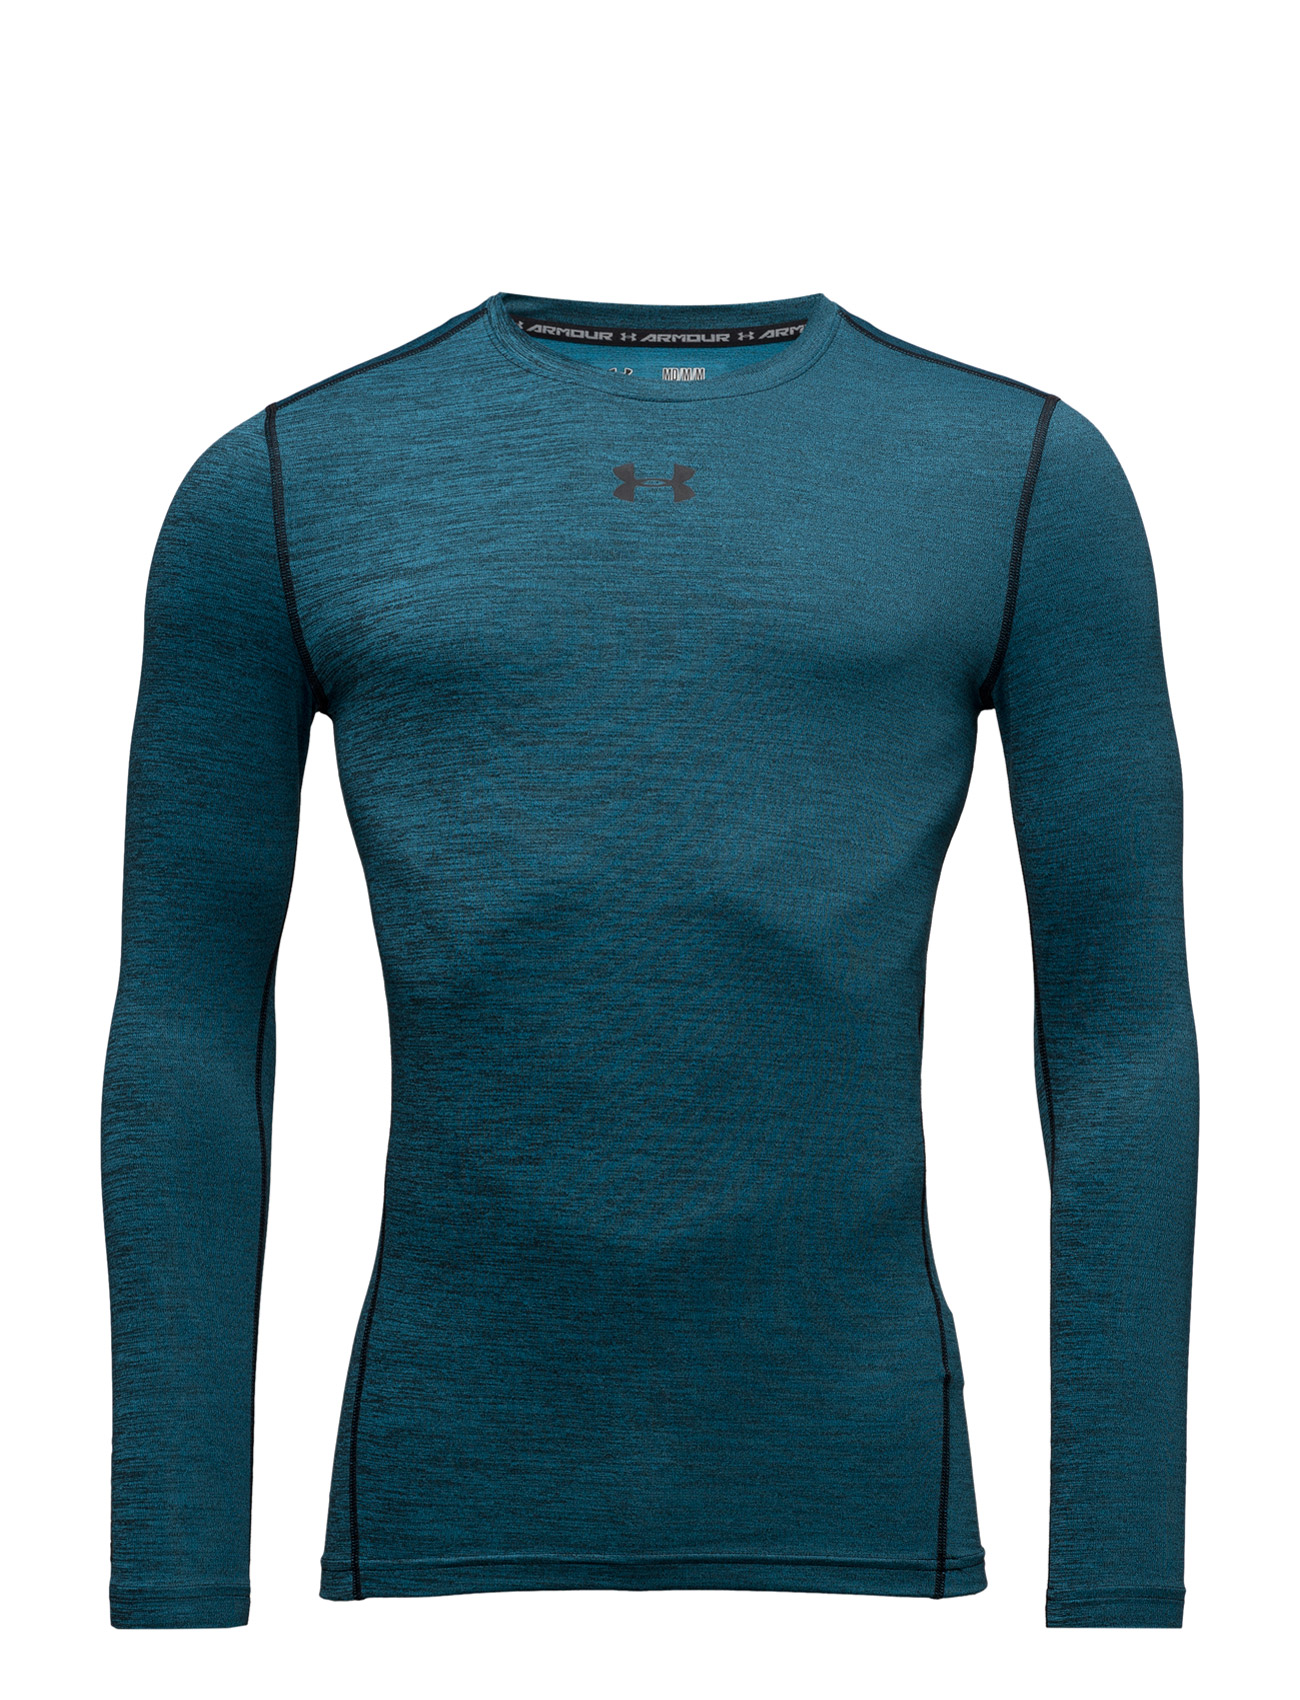 Cg Armour Twist Crew Under Armour Sports toppe til Herrer i